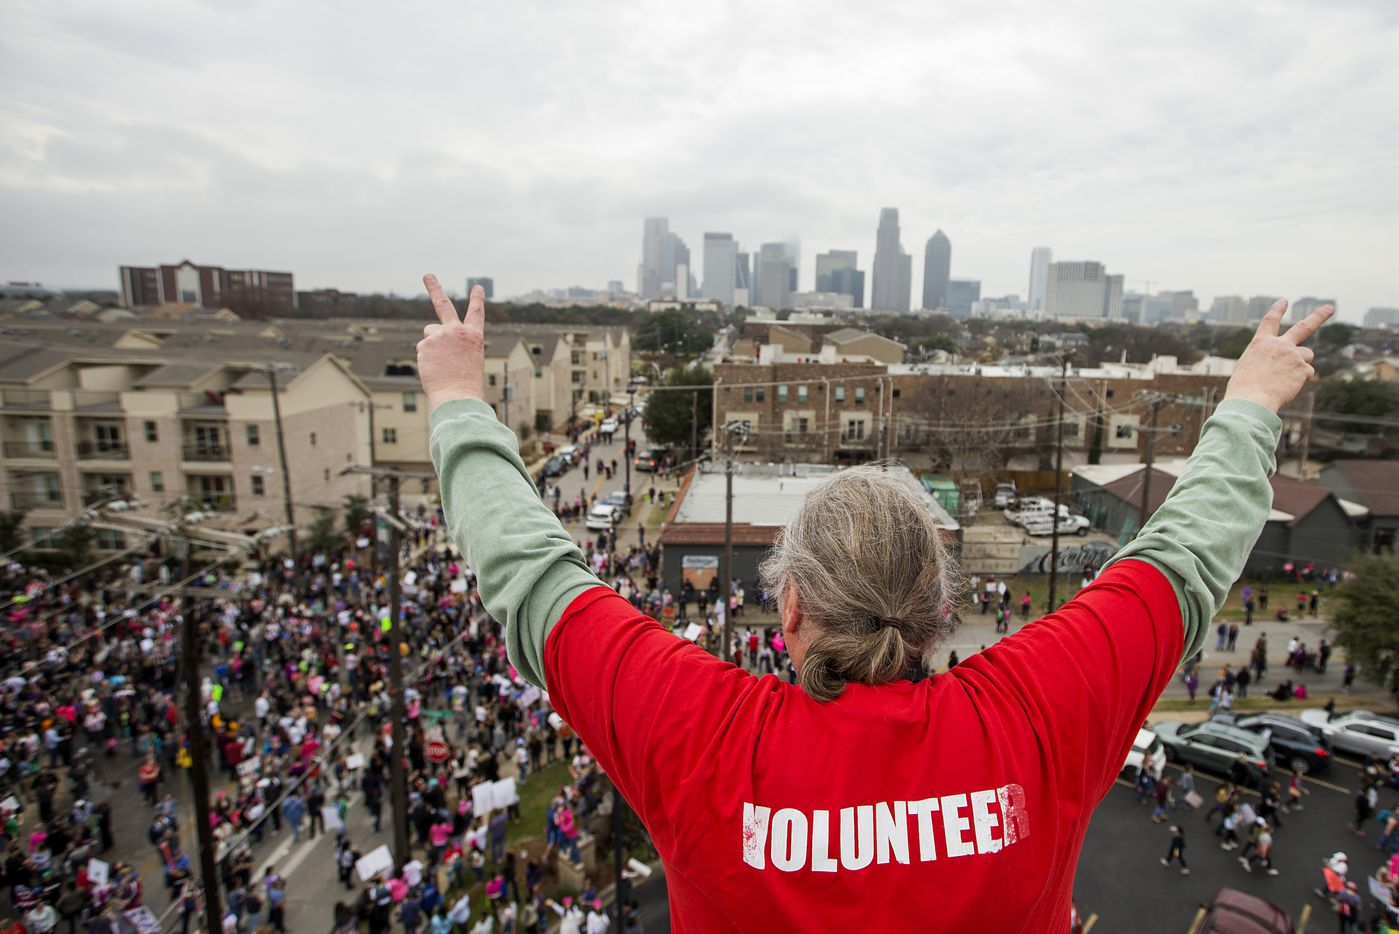 Herb Keener waves to participants reaching the end of the Dallas Women's March from atop the roof of the at the Communications Workers of America Hall on Washington on Saturday, Jan. 21, 2017, in Dallas.  The Dallas event was held in solidarity with the Women's March on Washington.